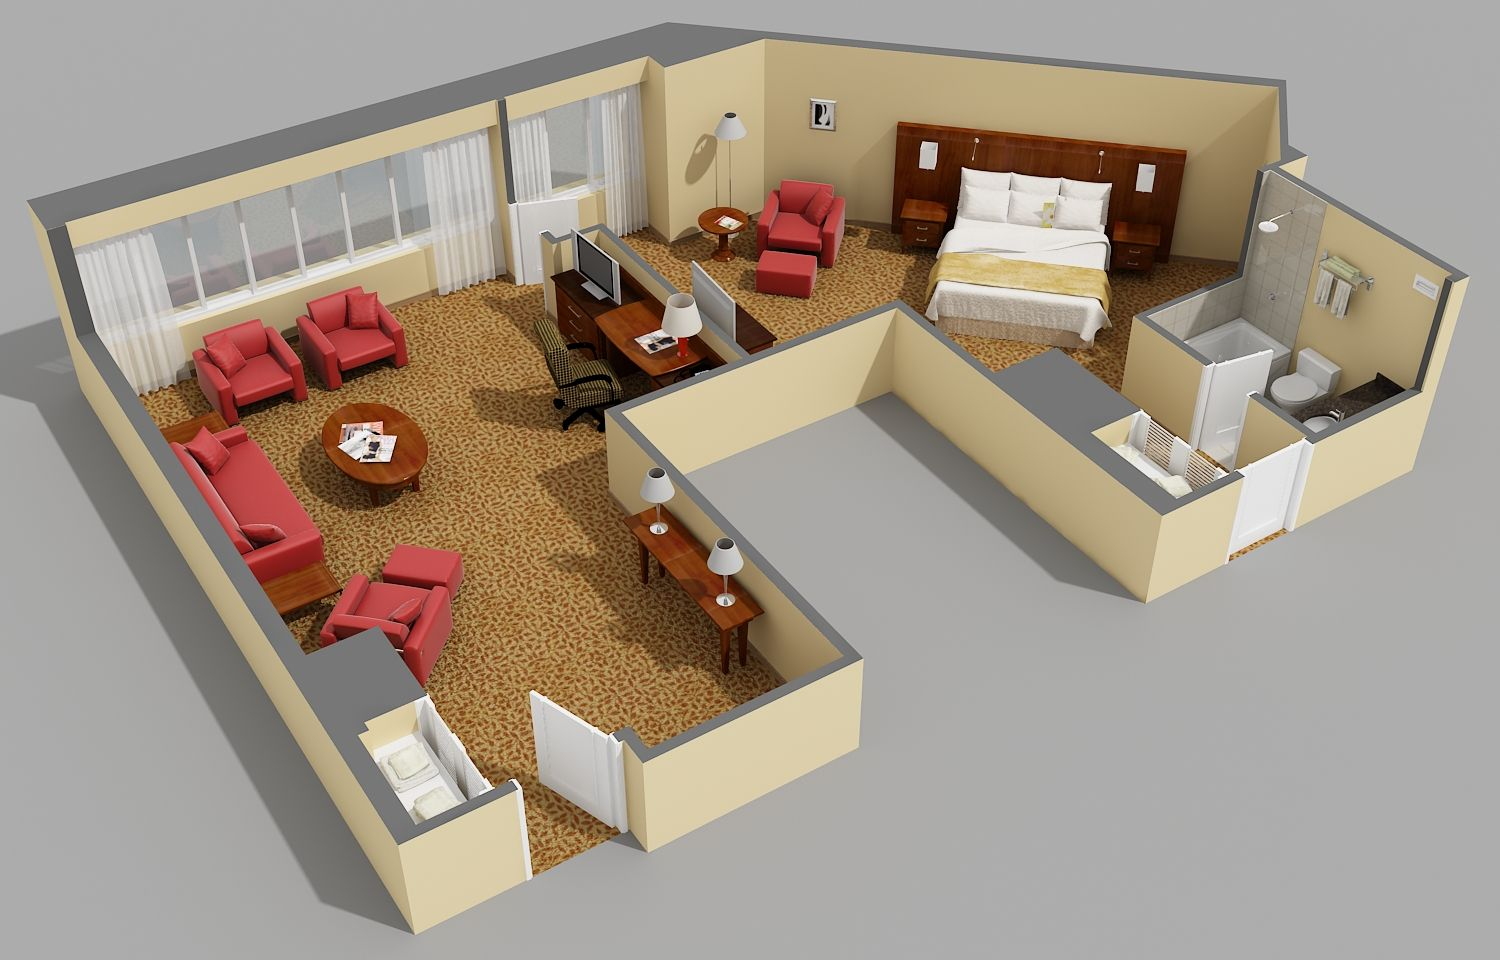 3d floor plans used for hotel marketing room hotel for In plan 3d